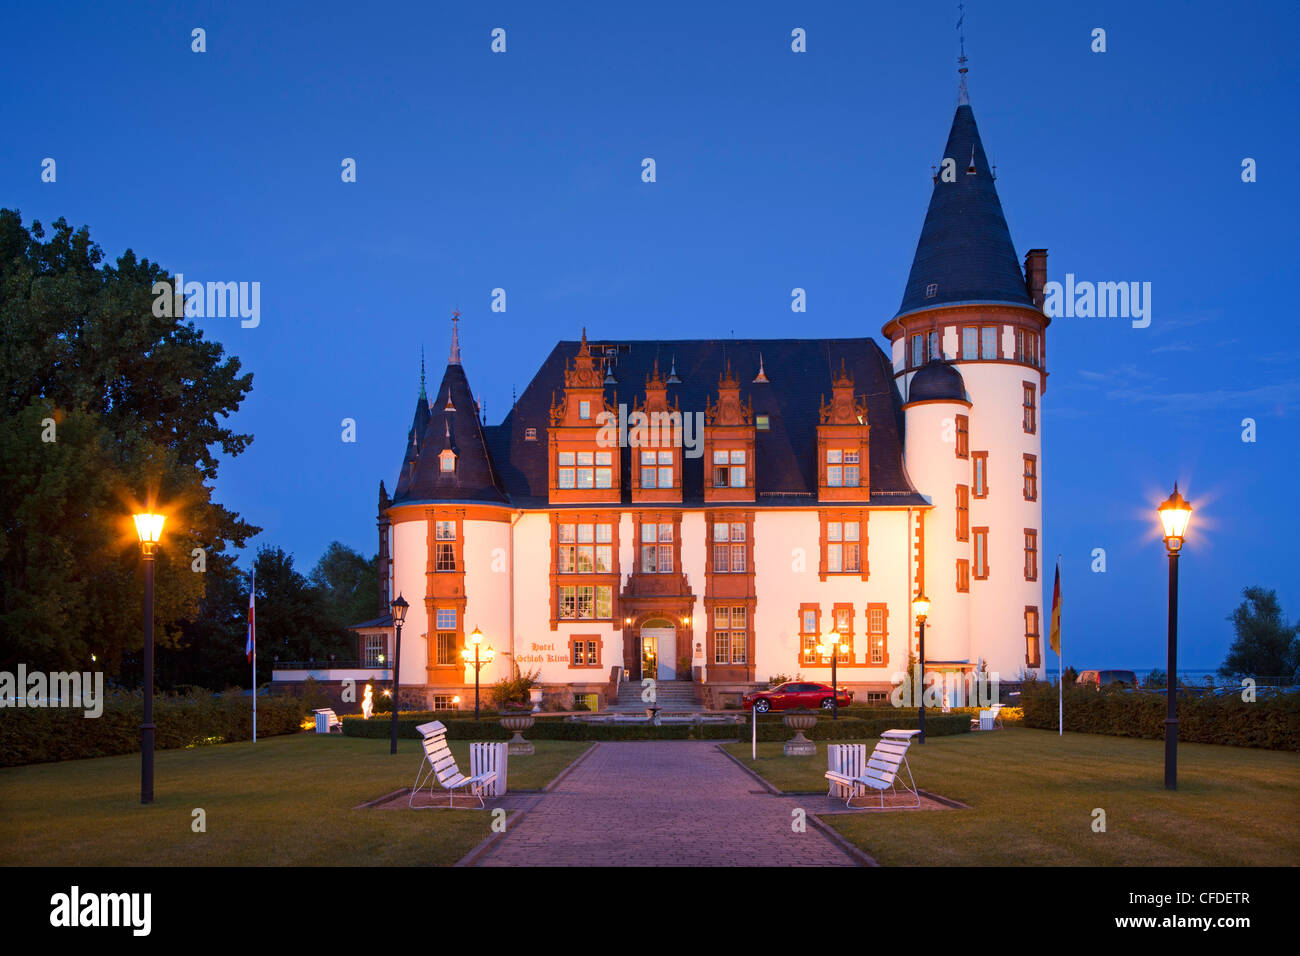 Hotel castle Klink in the evening, Mueritz, Mecklenburg lake district, Mecklenburg Western-Pomerania, Germany, Europe - Stock Image